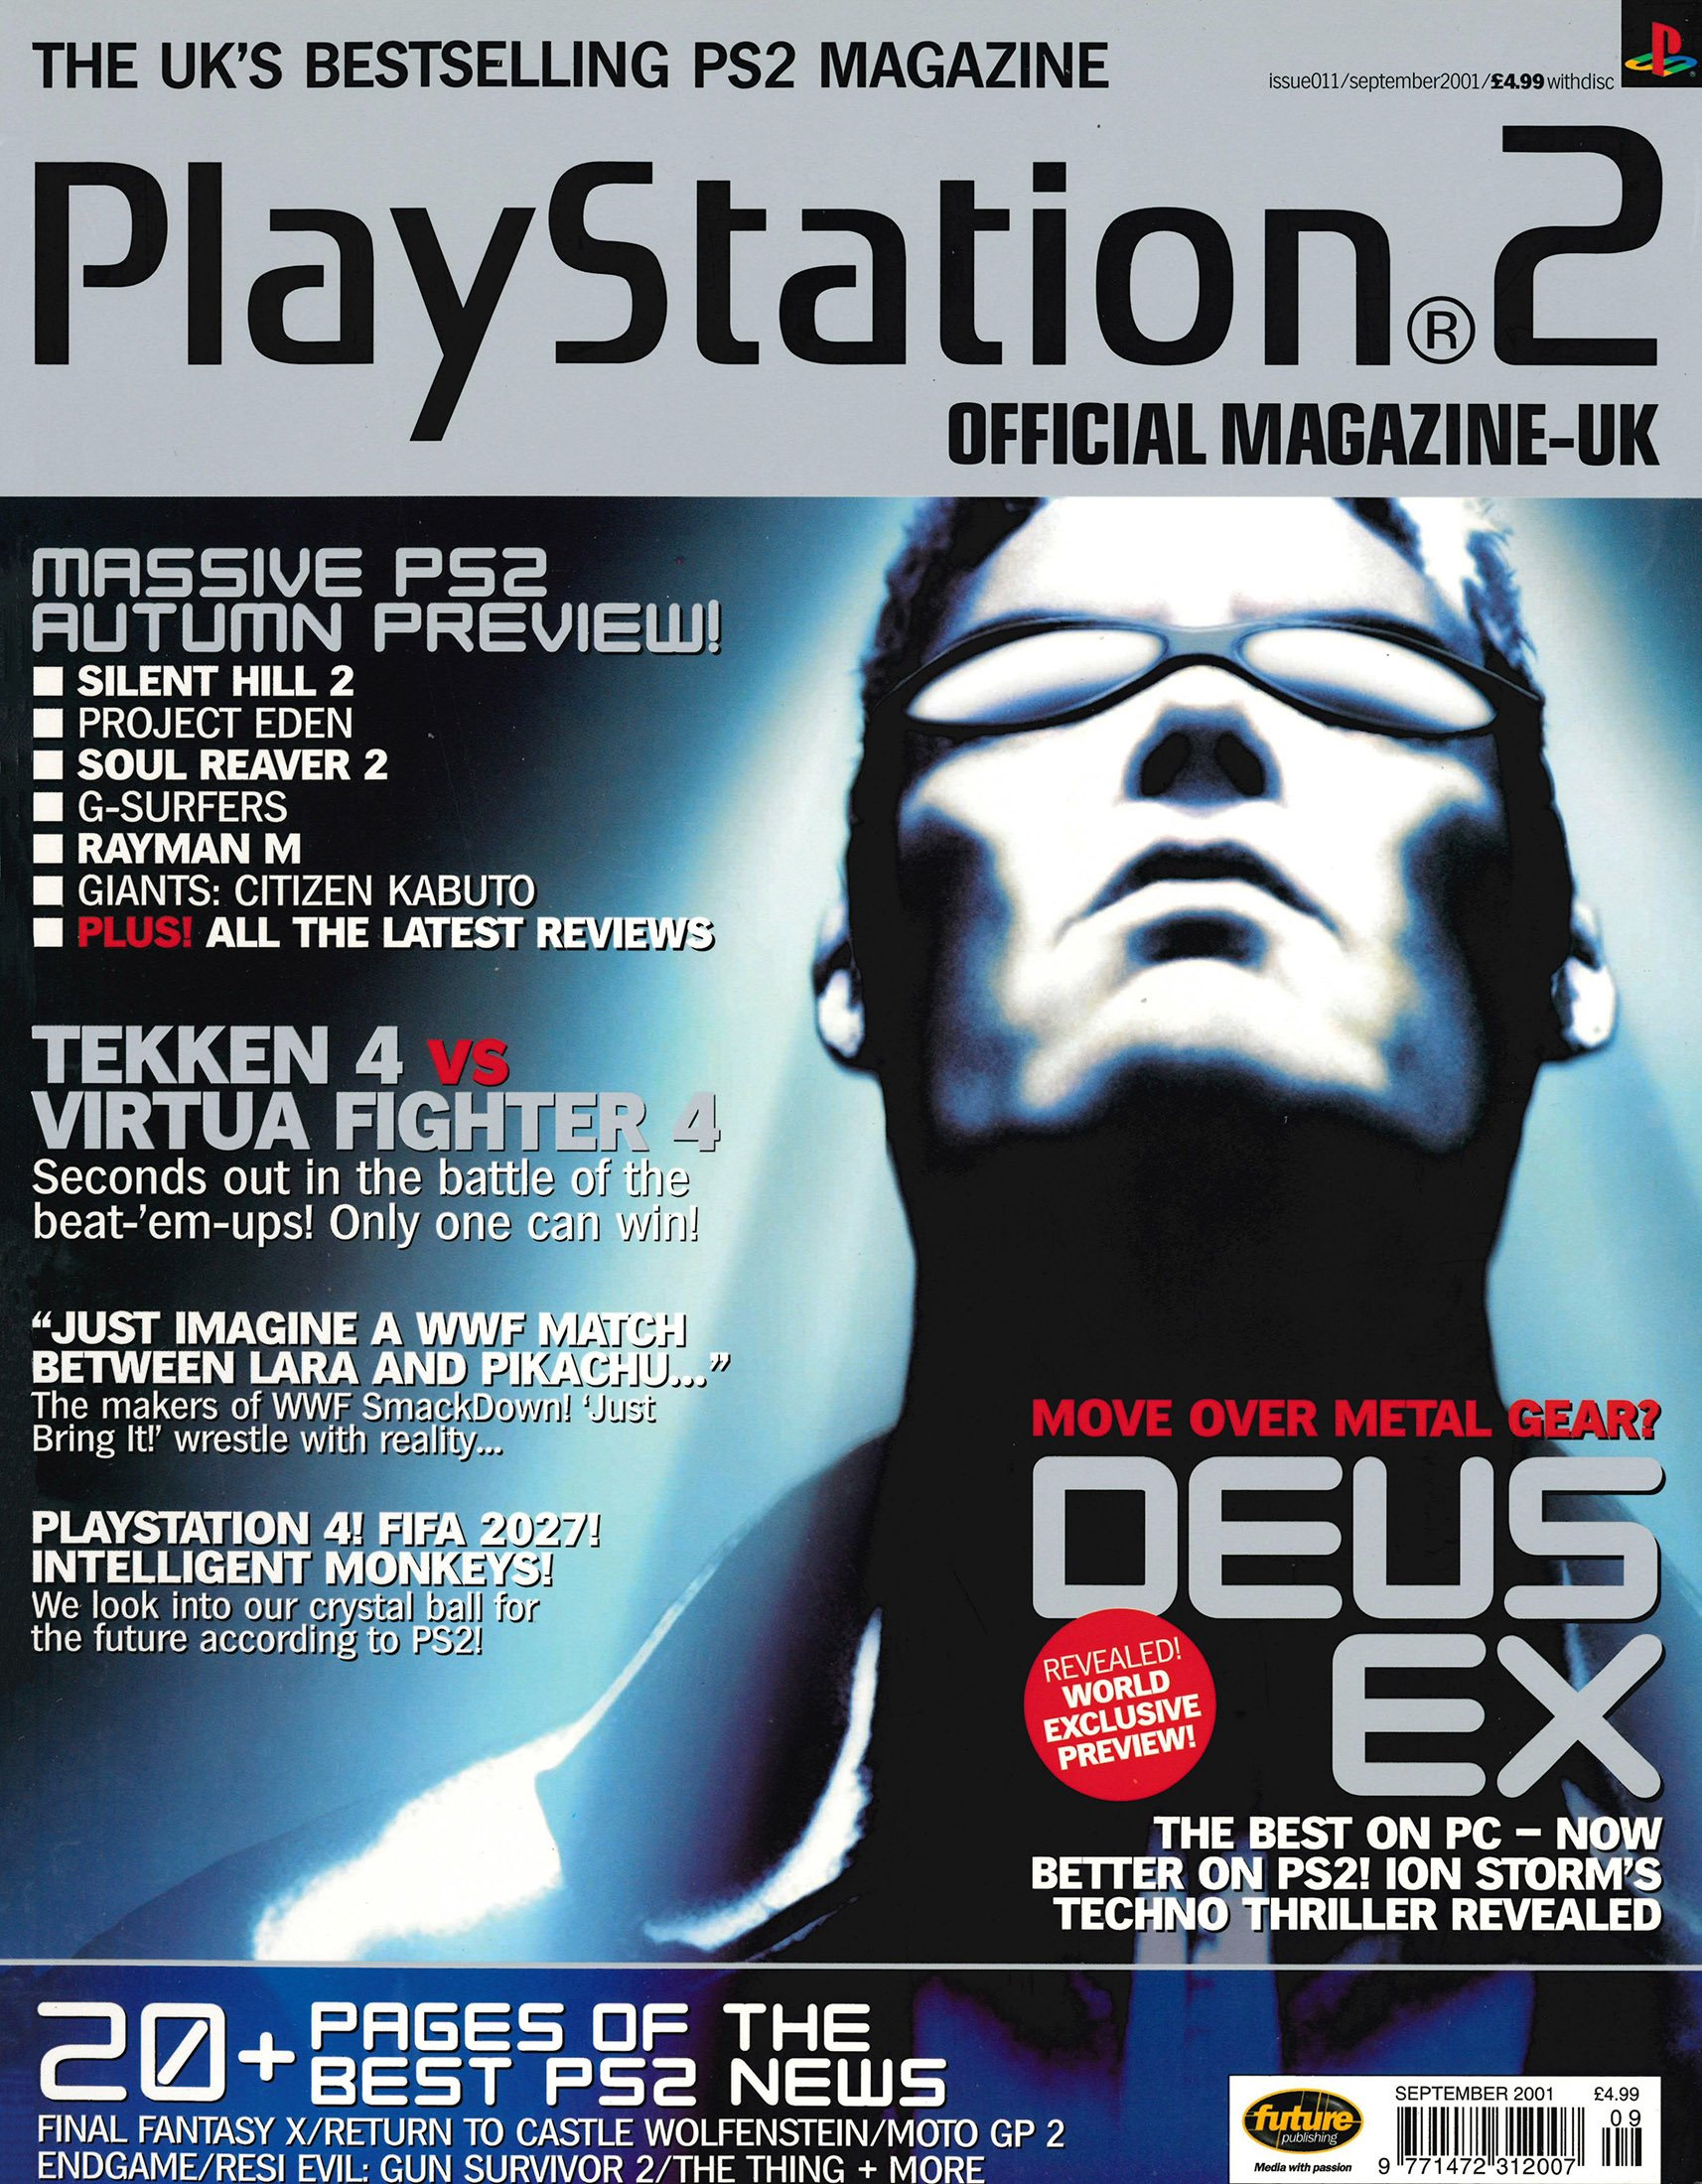 Official Playstation 2 Magazine UK 011 (September 2001)